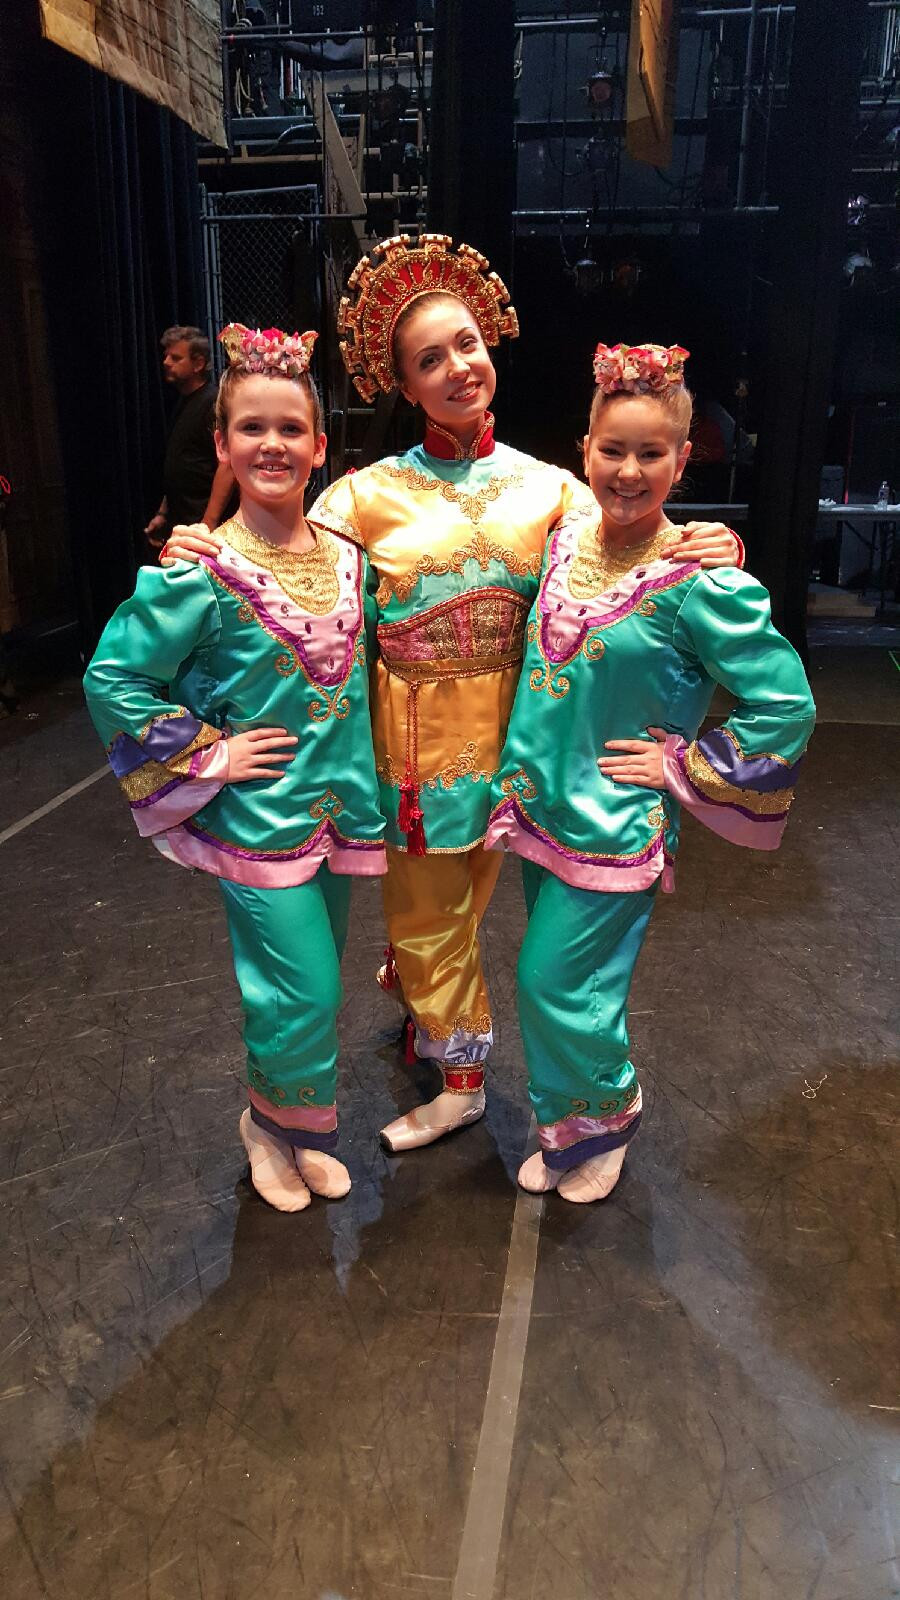 Gracie and Madison as Chinese divertissements